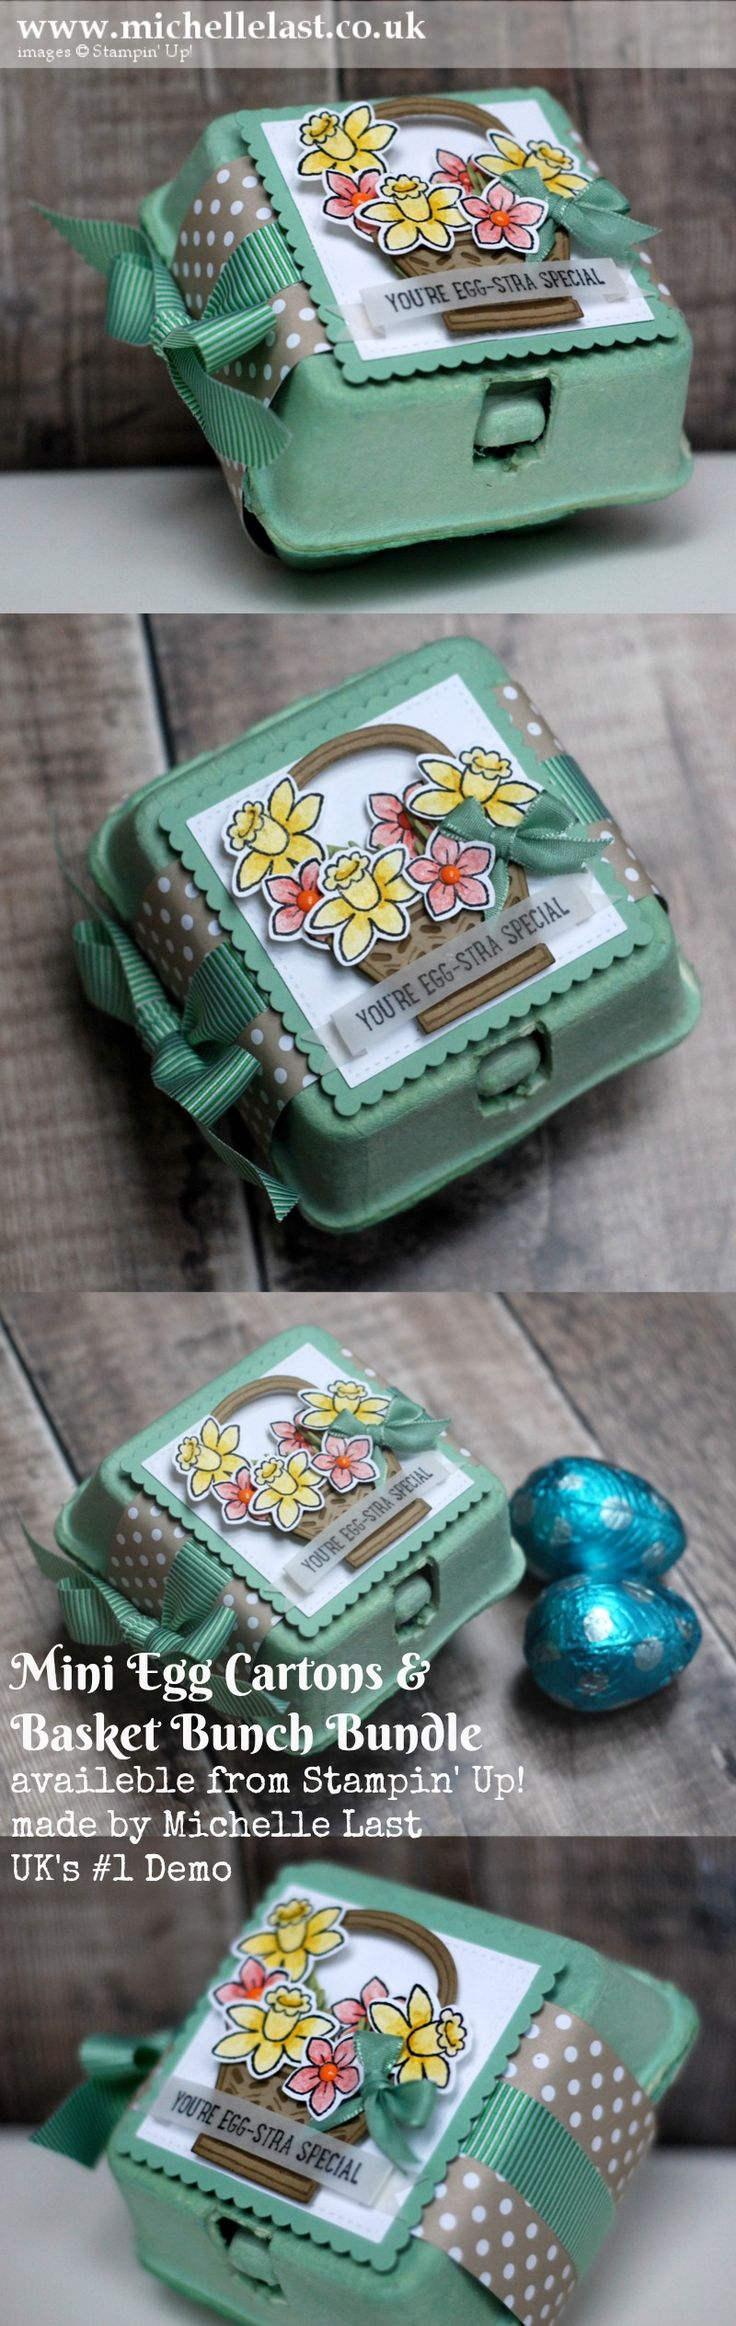 Easter Egg Carton & Basket Bunch from Stampin Up for the Creative Hearts Blog hop made by Michelle Last UK's #1 Demonstrator. Visit my blog for ideas and to order Stampin Up products